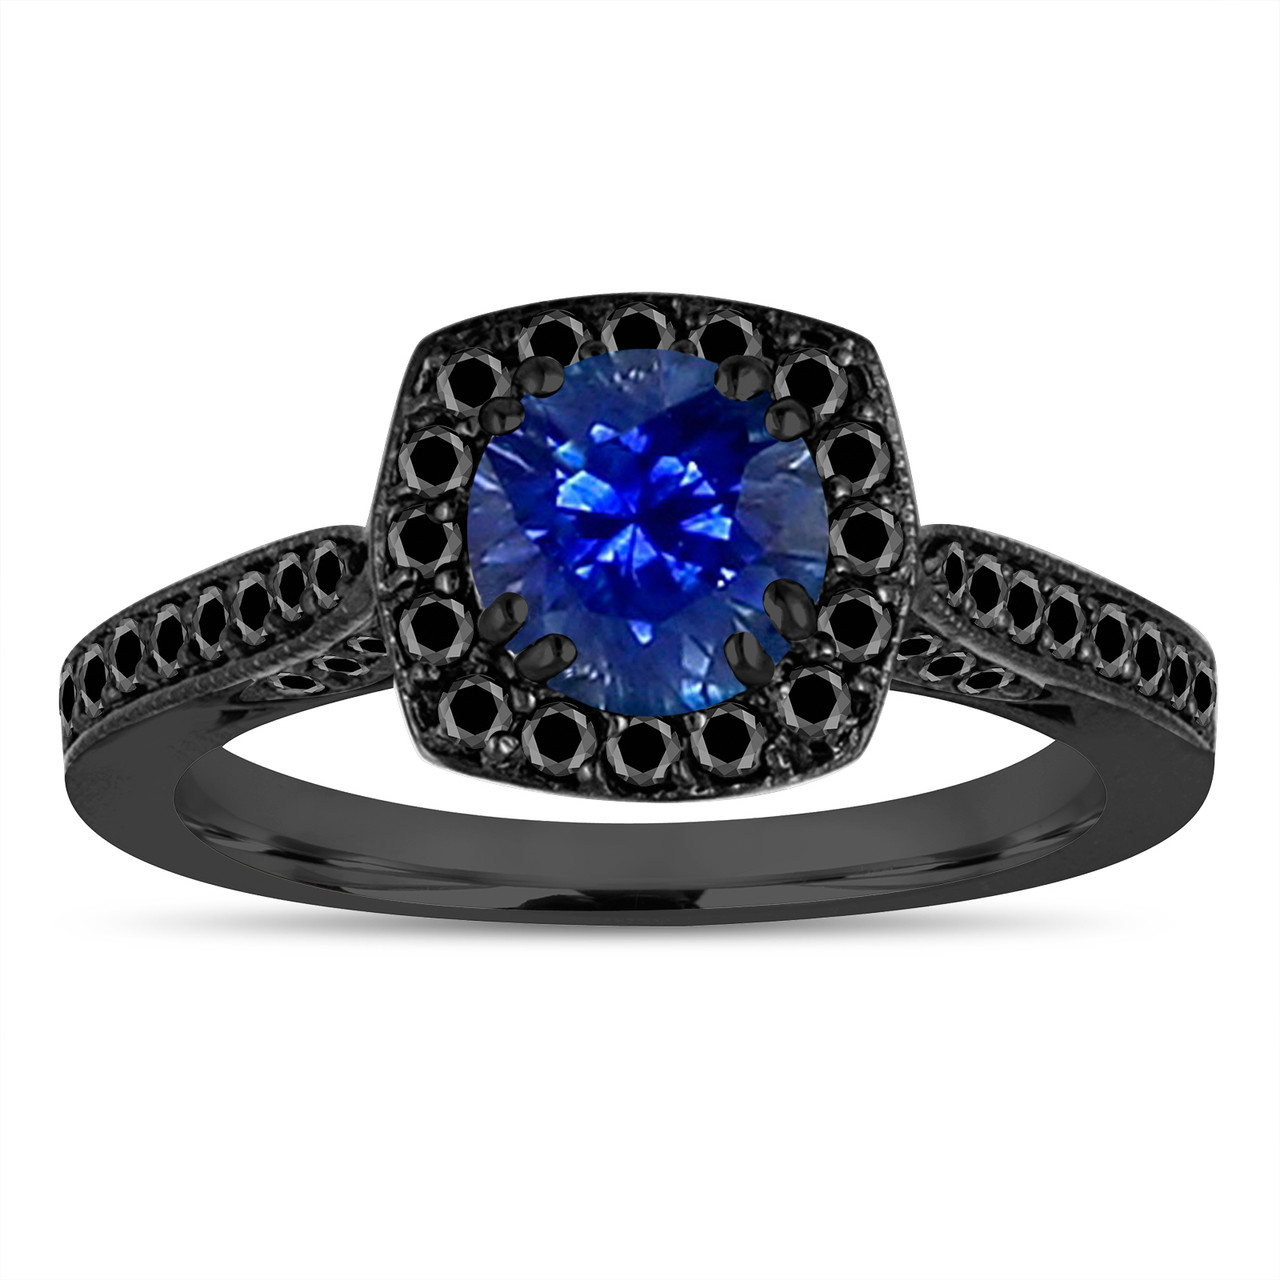 Sapphire Wedding Rings.Vintage Style Sapphire Engagement Ring Blue Sapphire Wedding Ring 14k Black Gold 1 36 Carat Certified Halo Pave